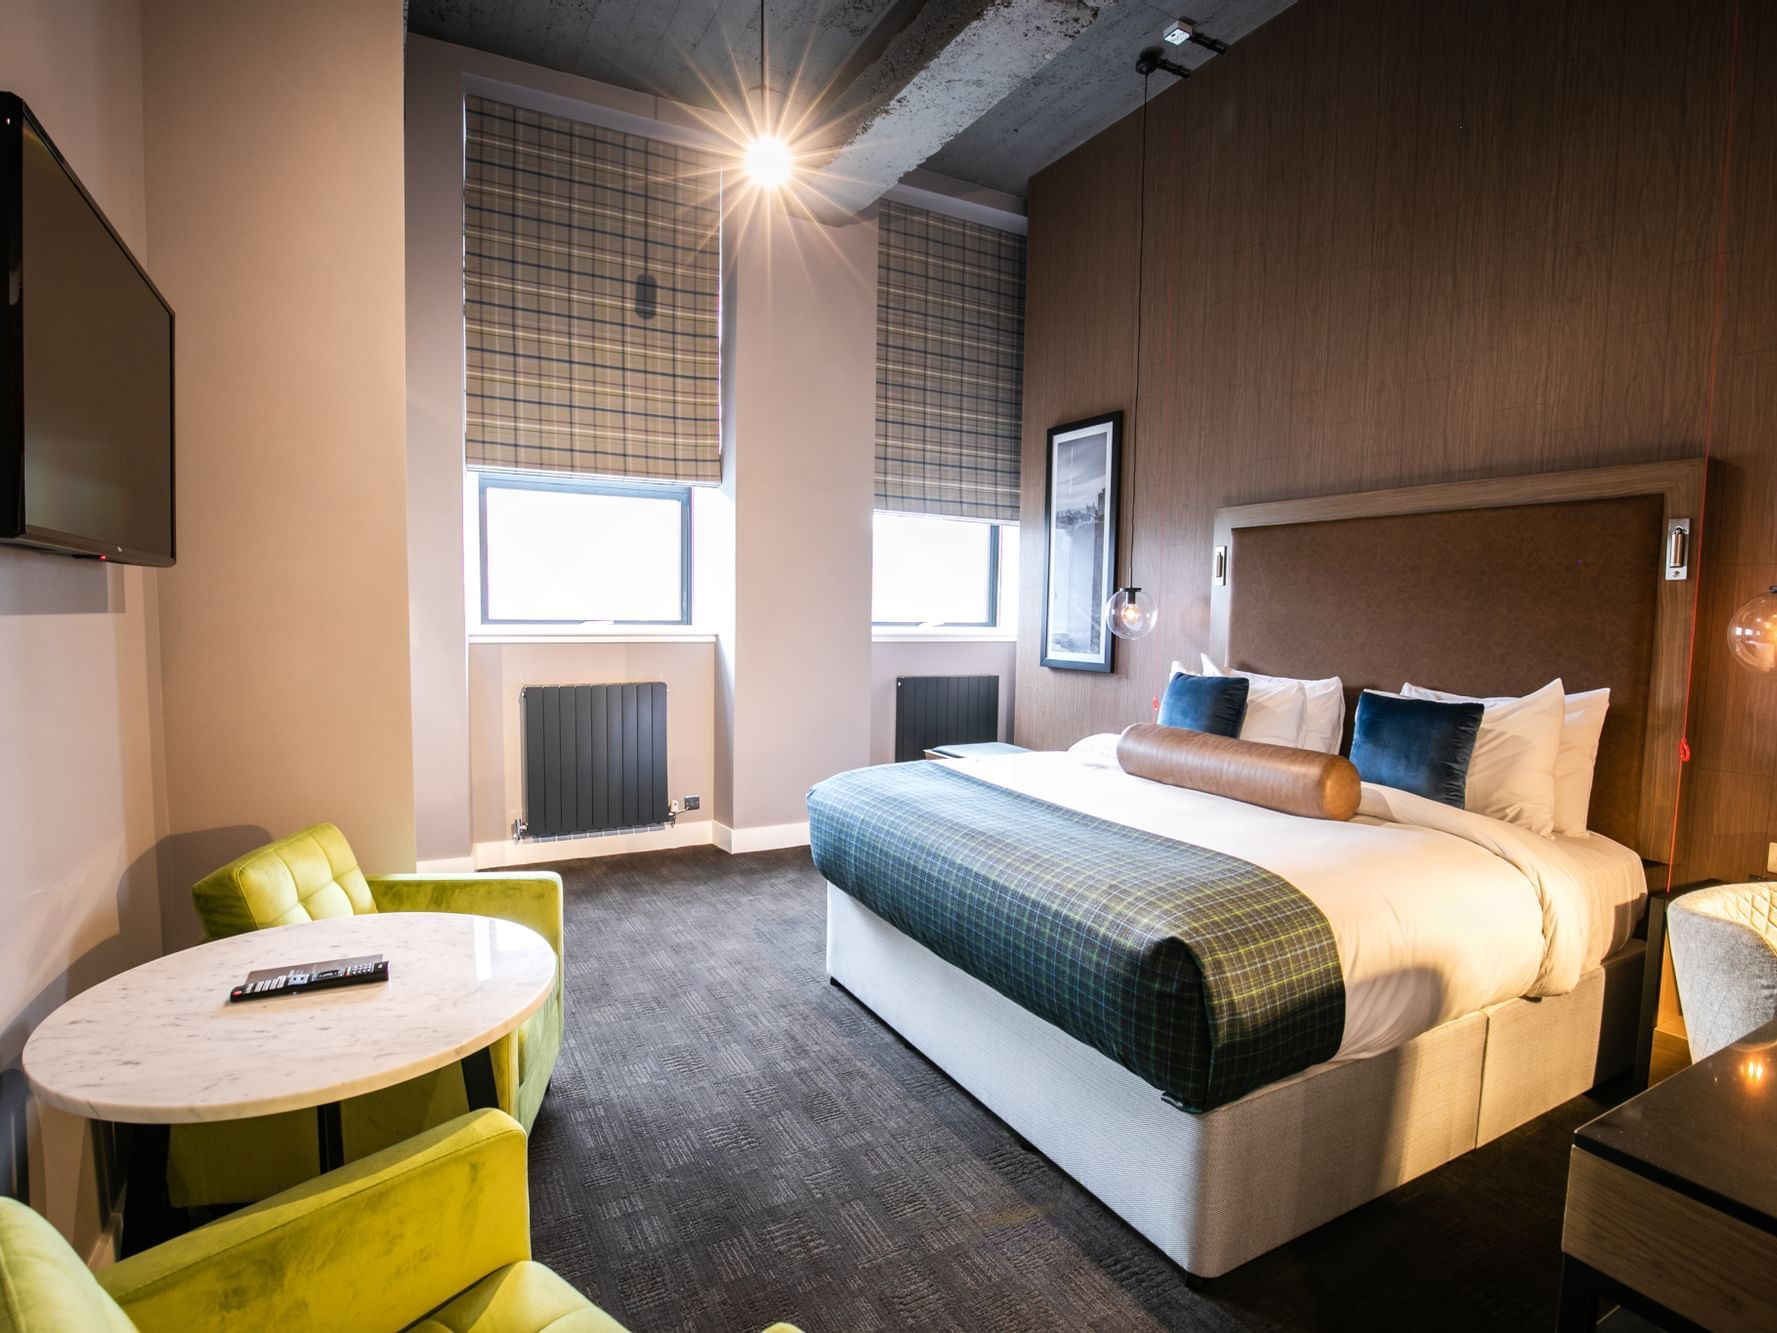 The Accessible King Room at Sandman Signature Aberdeen Hotel with one super king bed (luxury glencraft mattress)